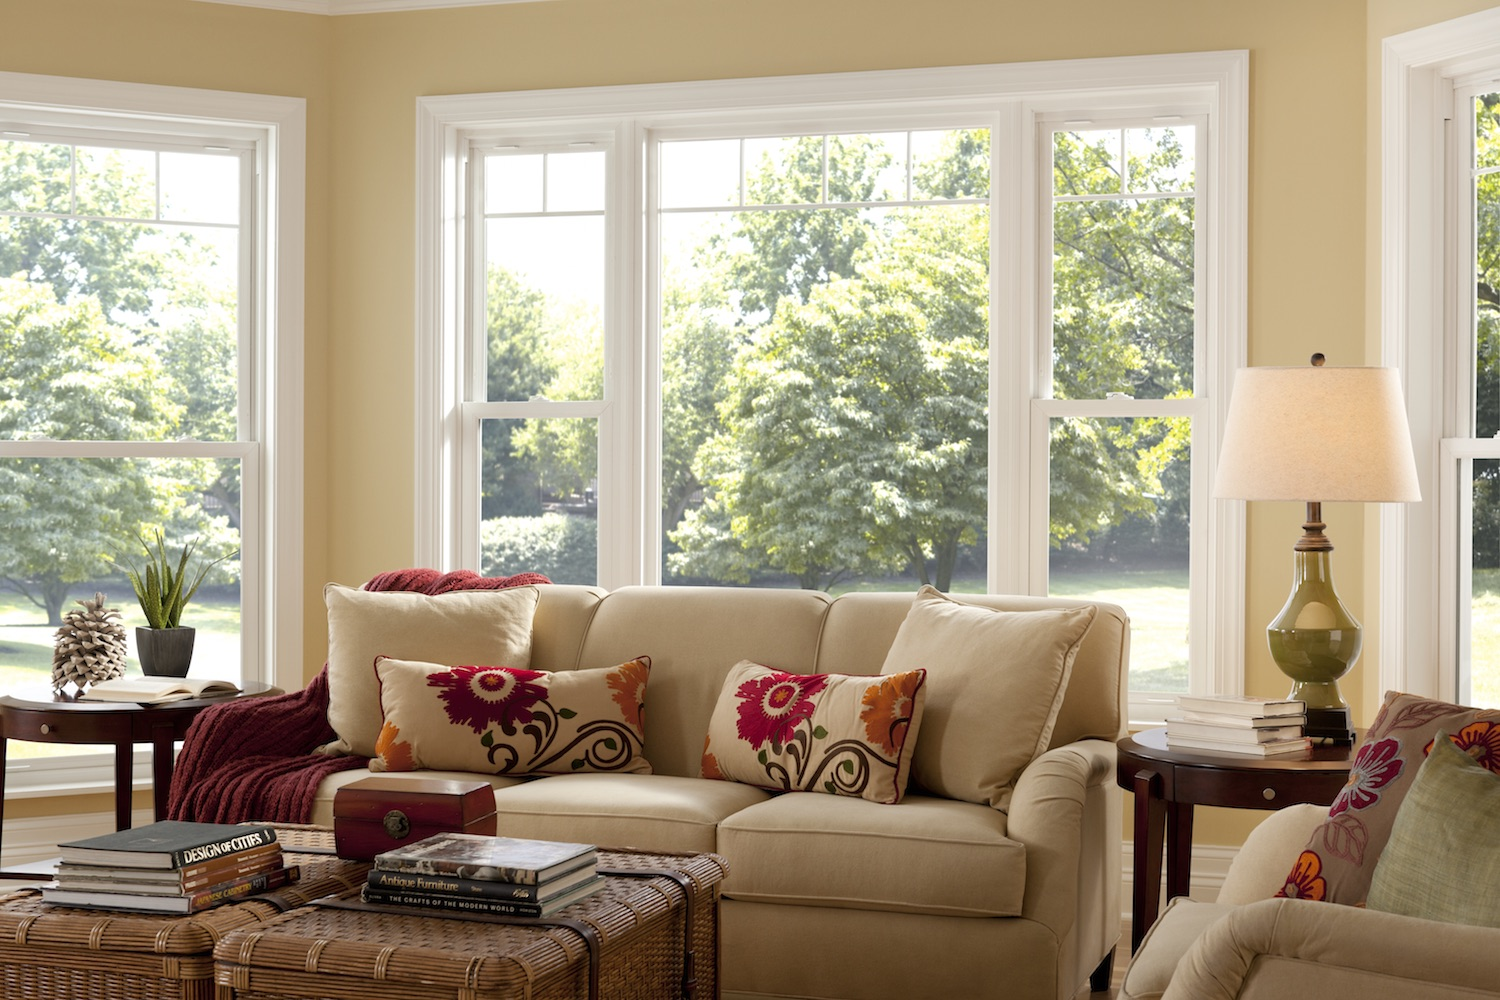 Custom Double Hung Windows  Simonton Windows & Doors. Ideas For Game Room Decor. Beach House Wall Decor. Dolphin Wall Decor. Decorative Corner Brackets For Wood. Decorative Plastic Storage Boxes. Decorative Wooden Chest. Living Room Furniture Decor. Around The World Party Decorations